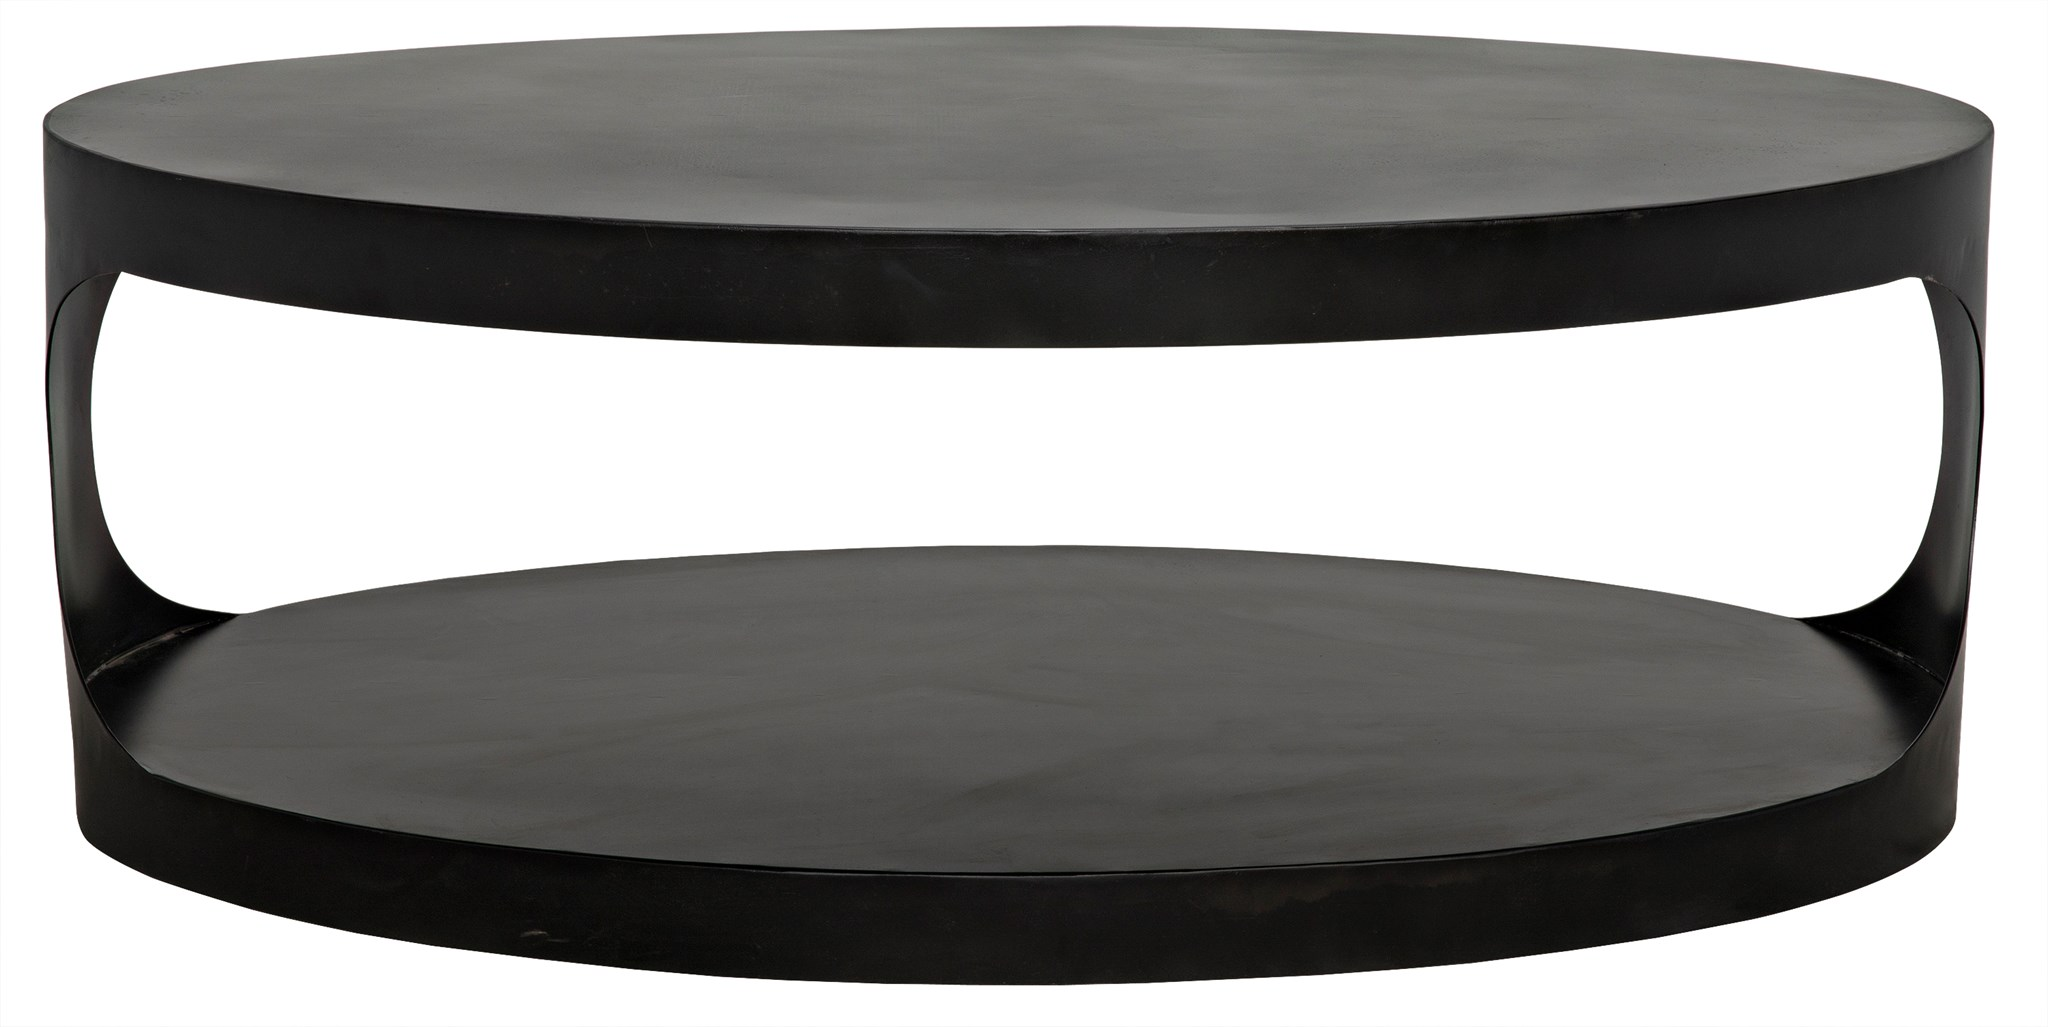 QS Eclipse Oval Coffee Table cocktail tables noir